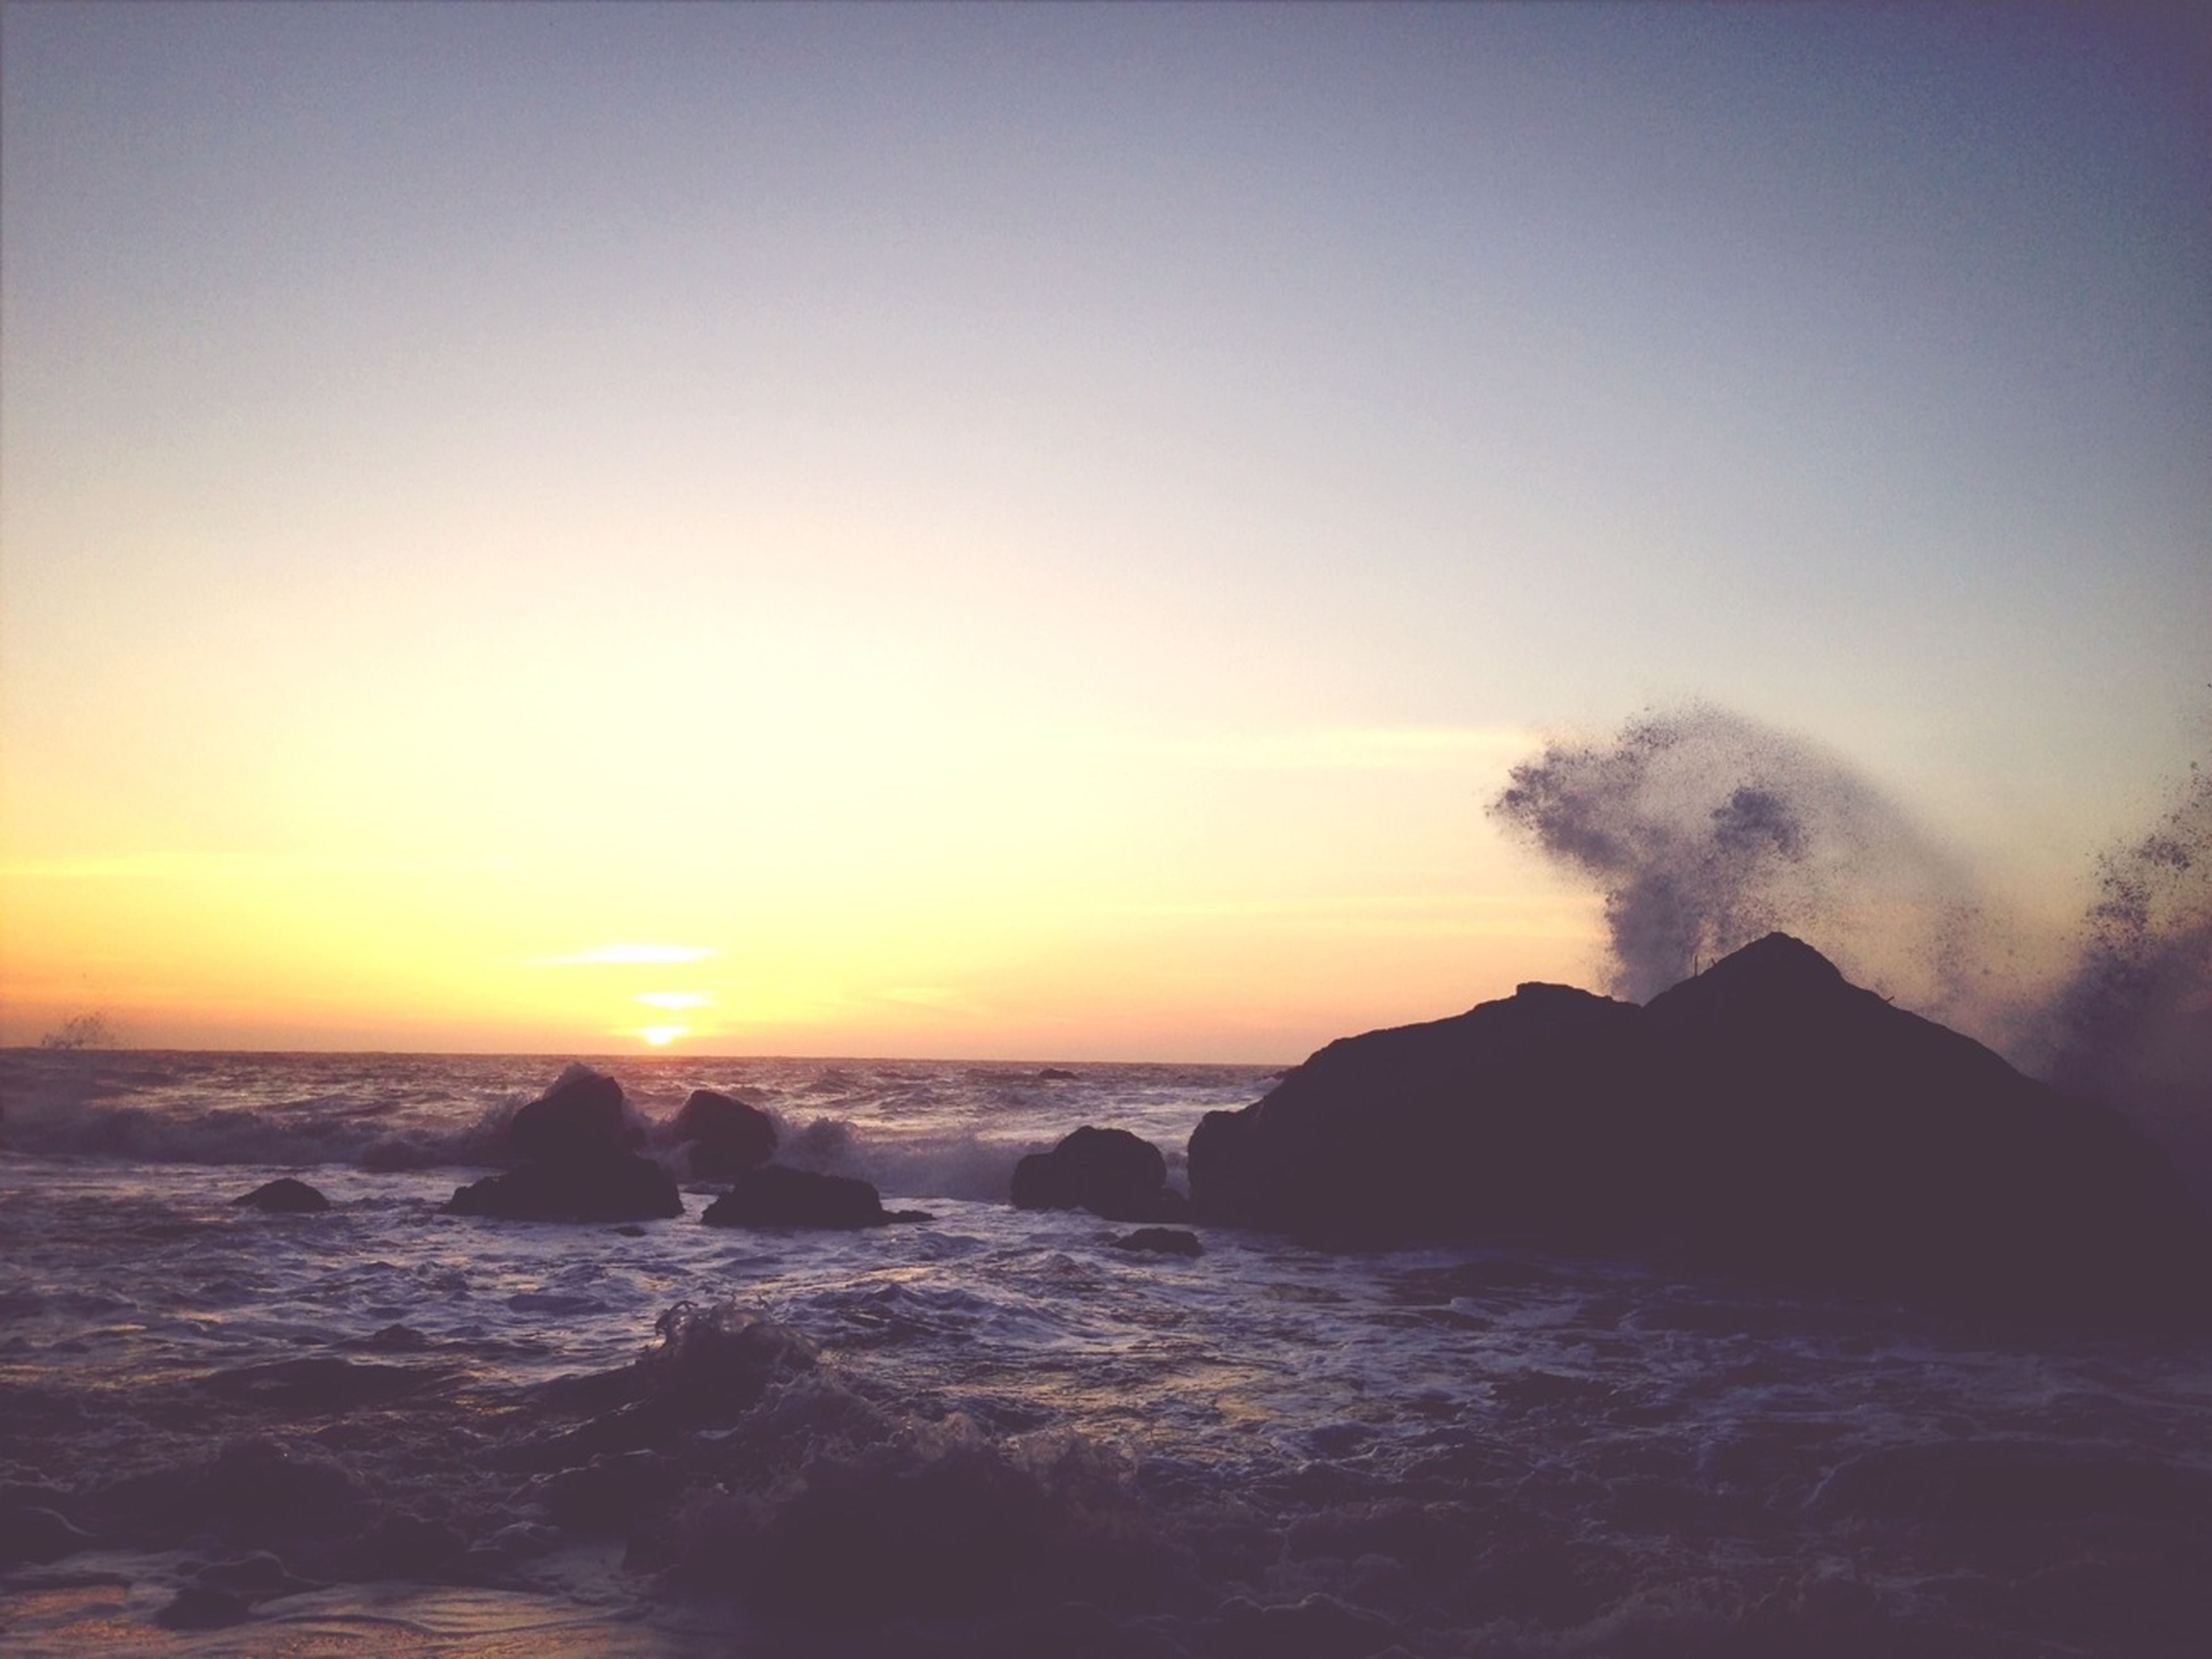 sea, water, scenics, sunset, horizon over water, beauty in nature, tranquil scene, rock - object, tranquility, rock formation, nature, idyllic, sky, waterfront, clear sky, orange color, wave, copy space, silhouette, rock